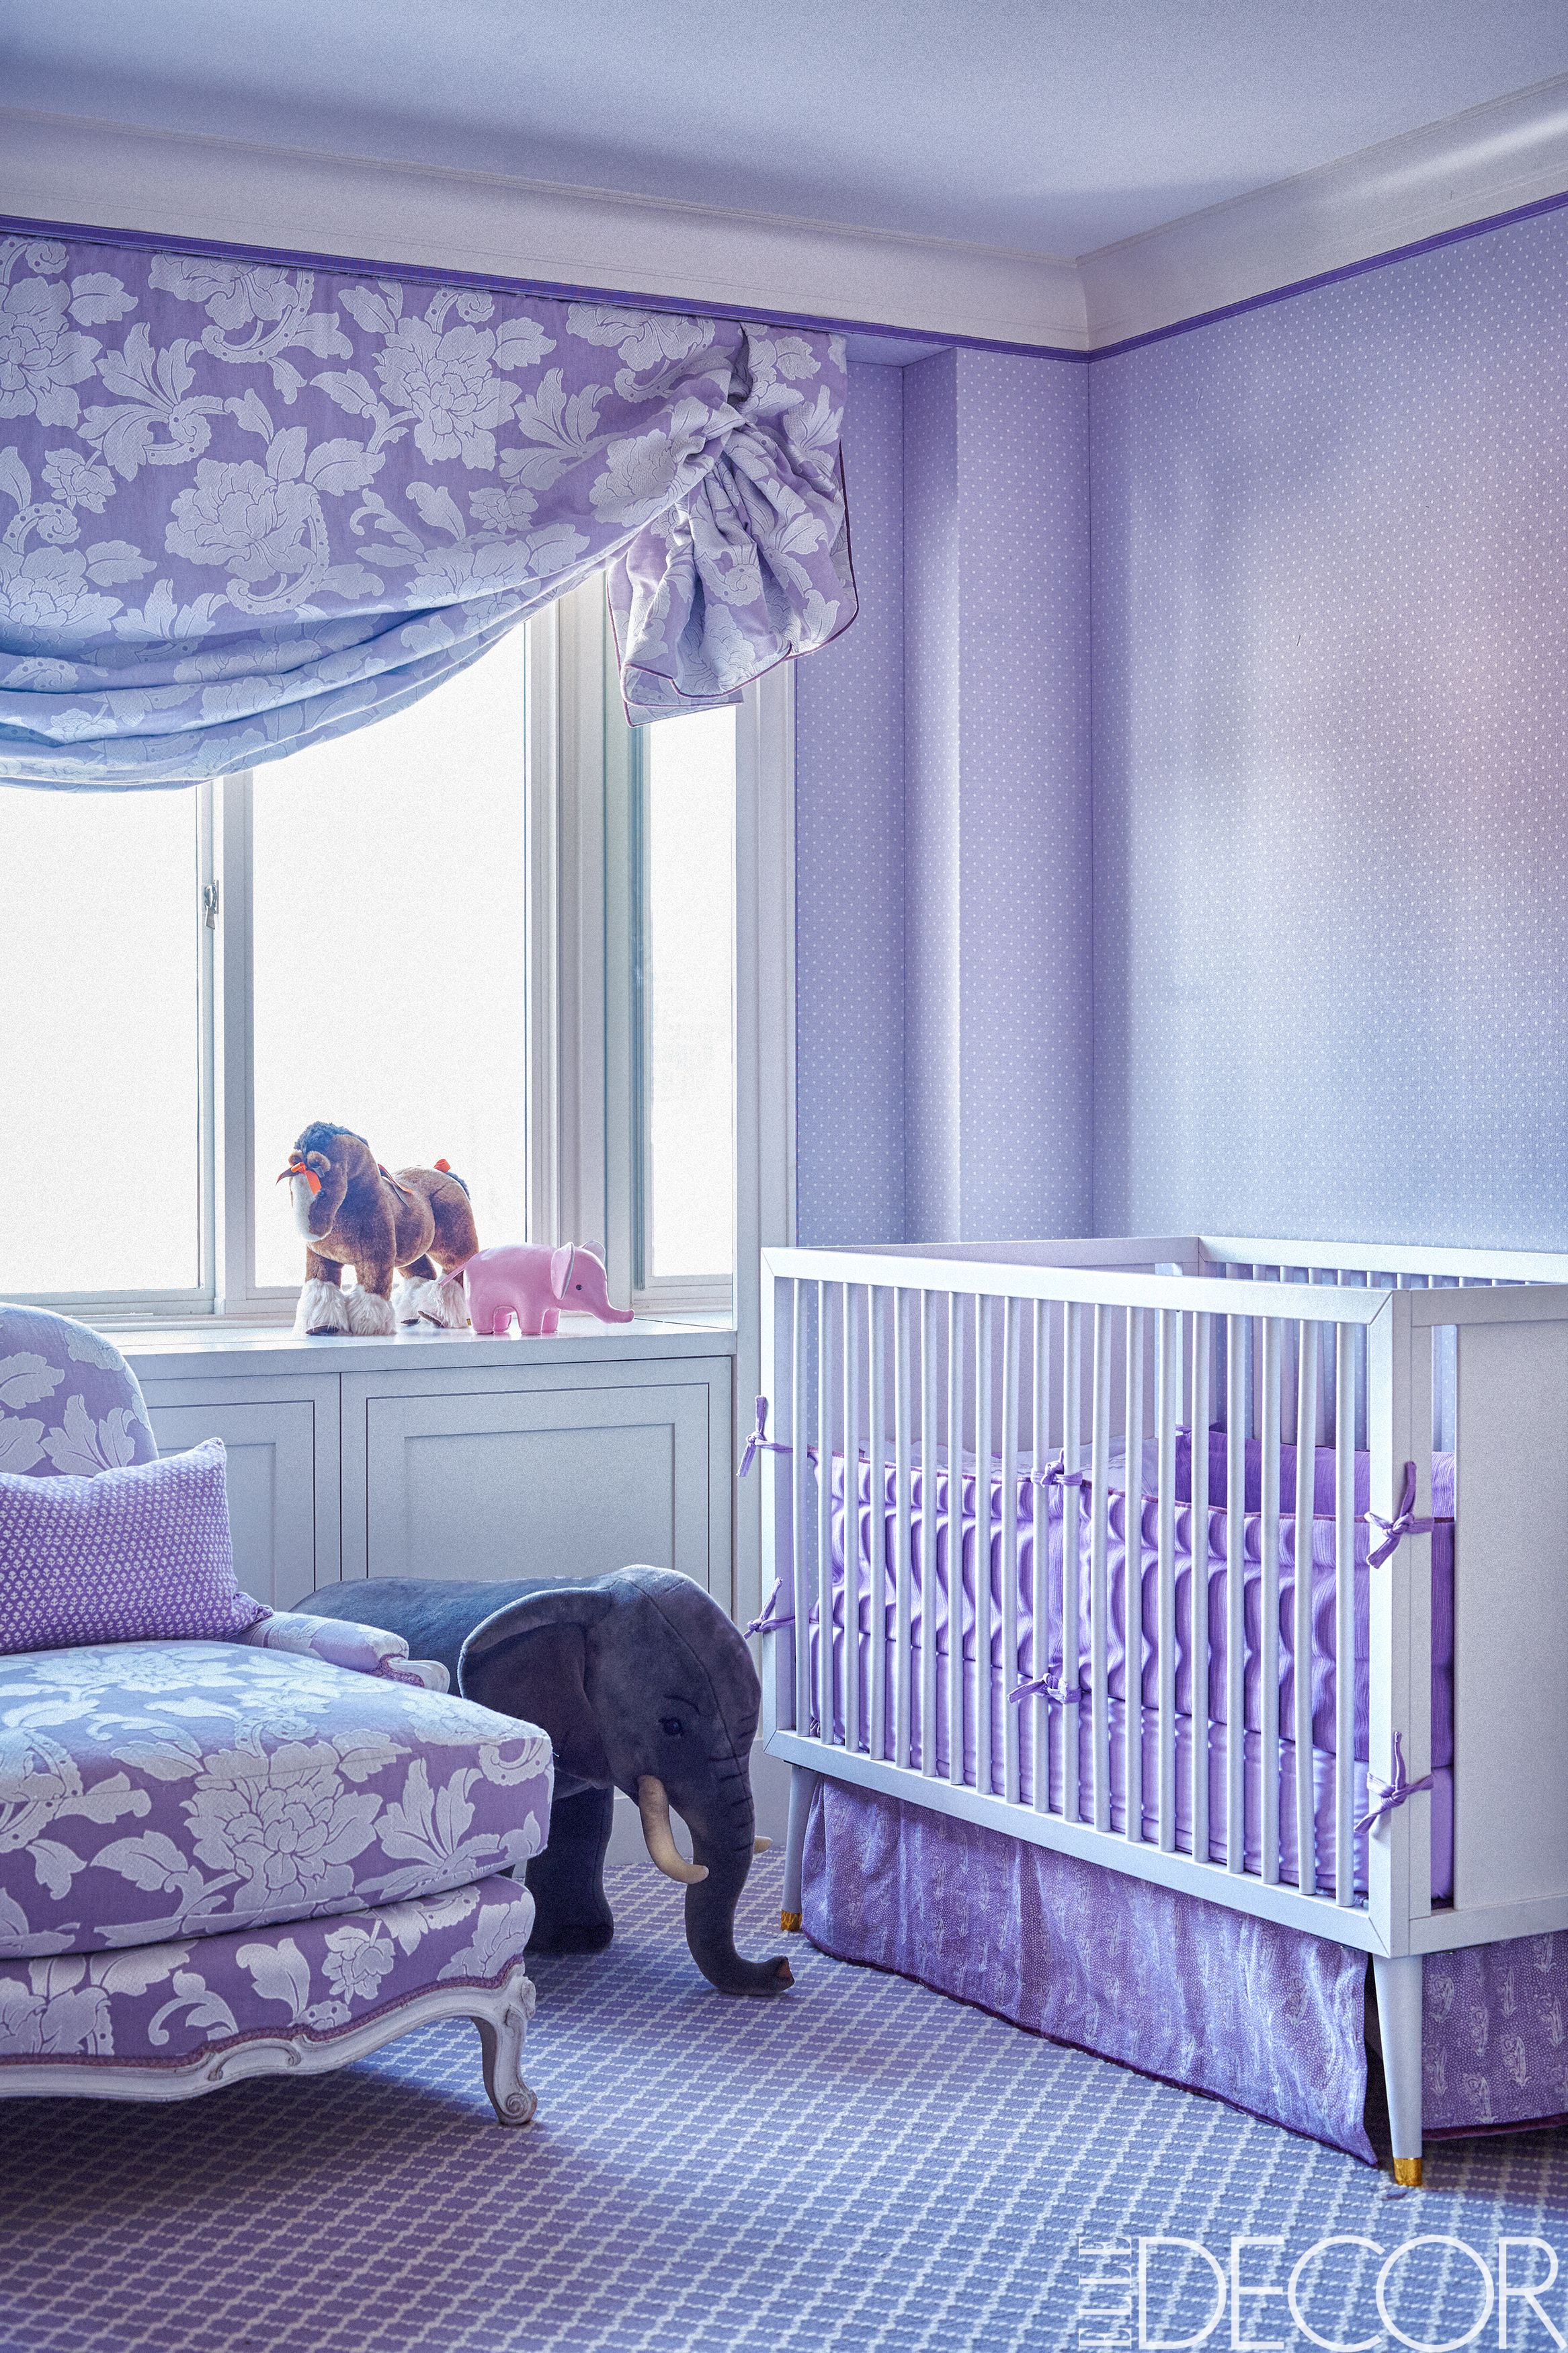 20 Creative Girls Room Ideas - How to Decorate a Girl's ... on Room Decoration For Girls  id=11834